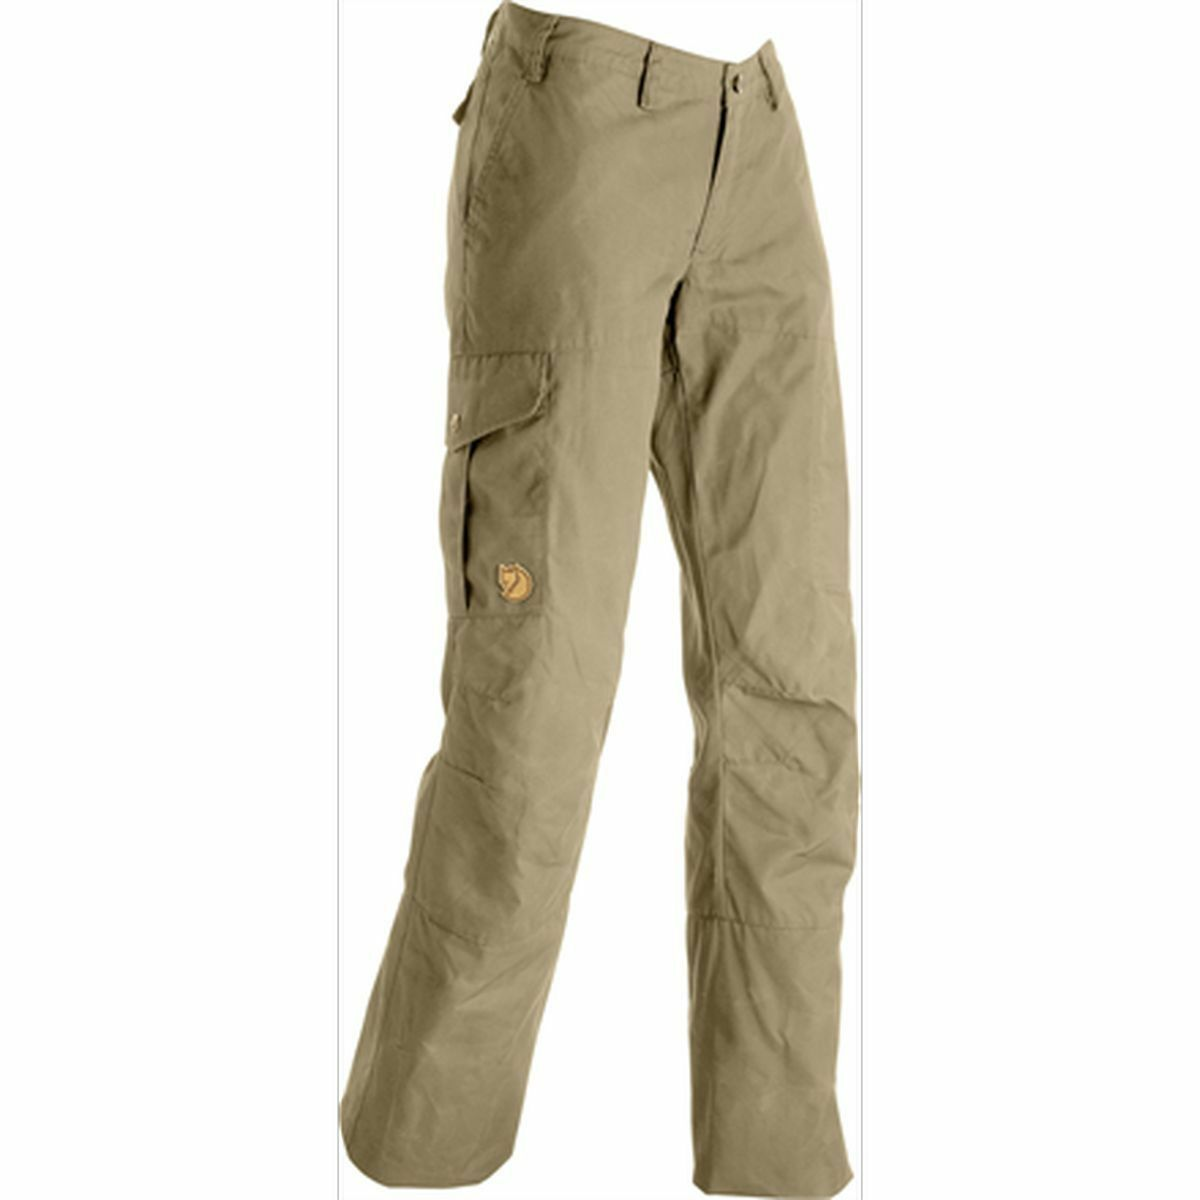 Fjäll Räven Karla Trousers, Sand,  Size 34, 89067  sale with high discount